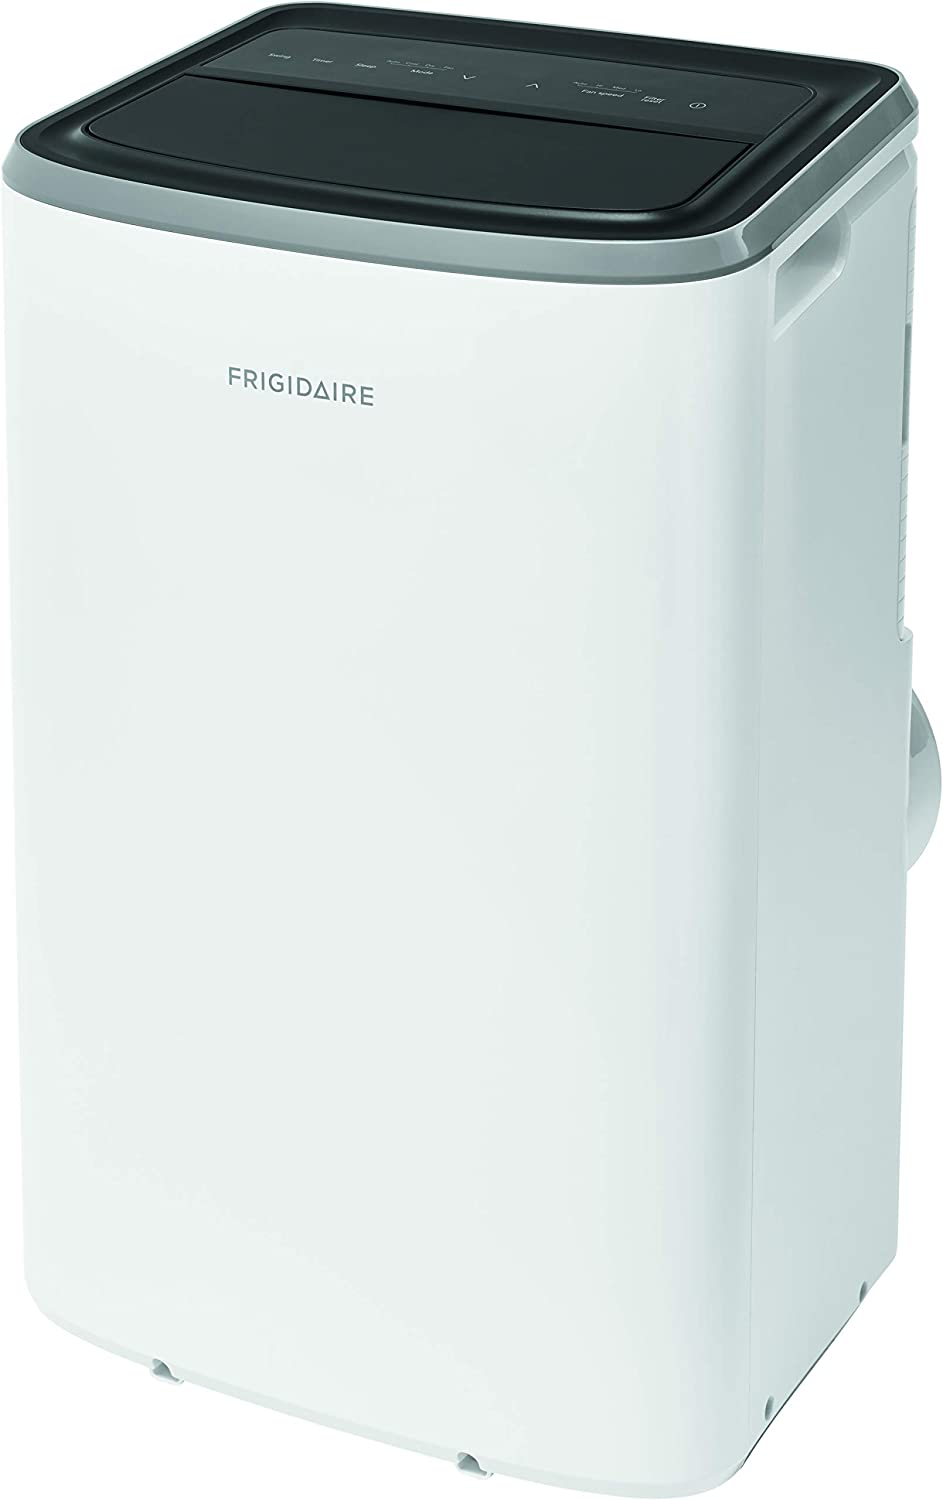 Frigidaire FHPC082AB1 Portable Air Conditioner with Remote Control for Rooms, White